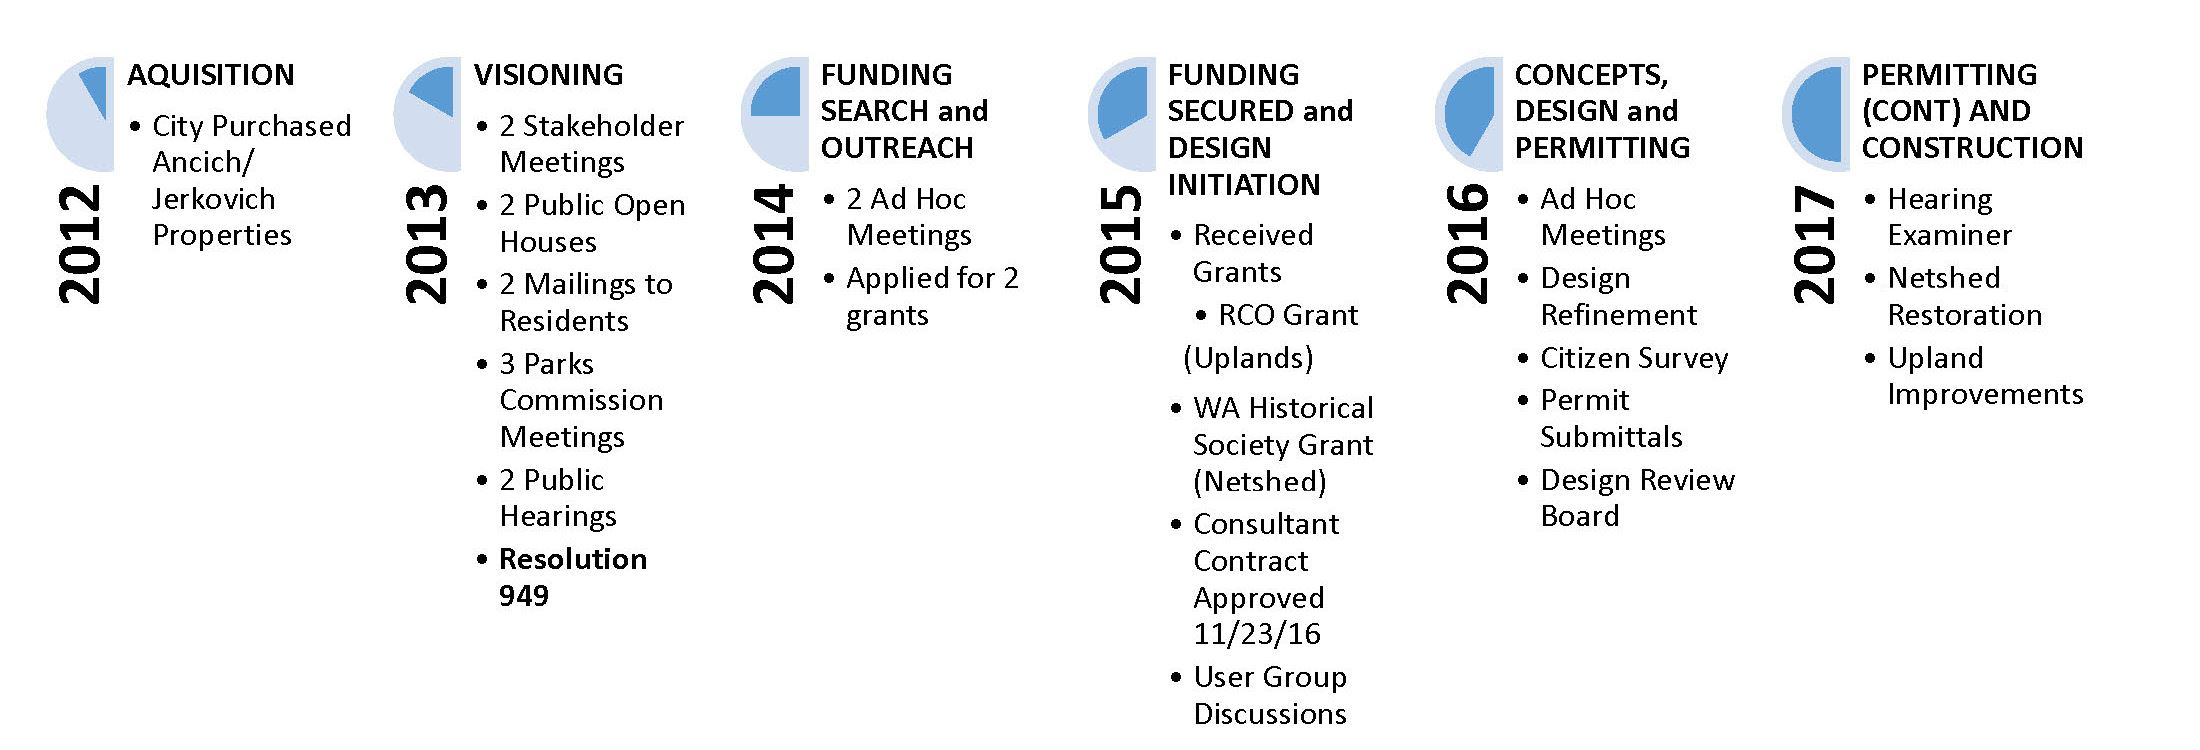 Timeline of Ancich Waterfront Park and Netshed Rehabilitation Project 2